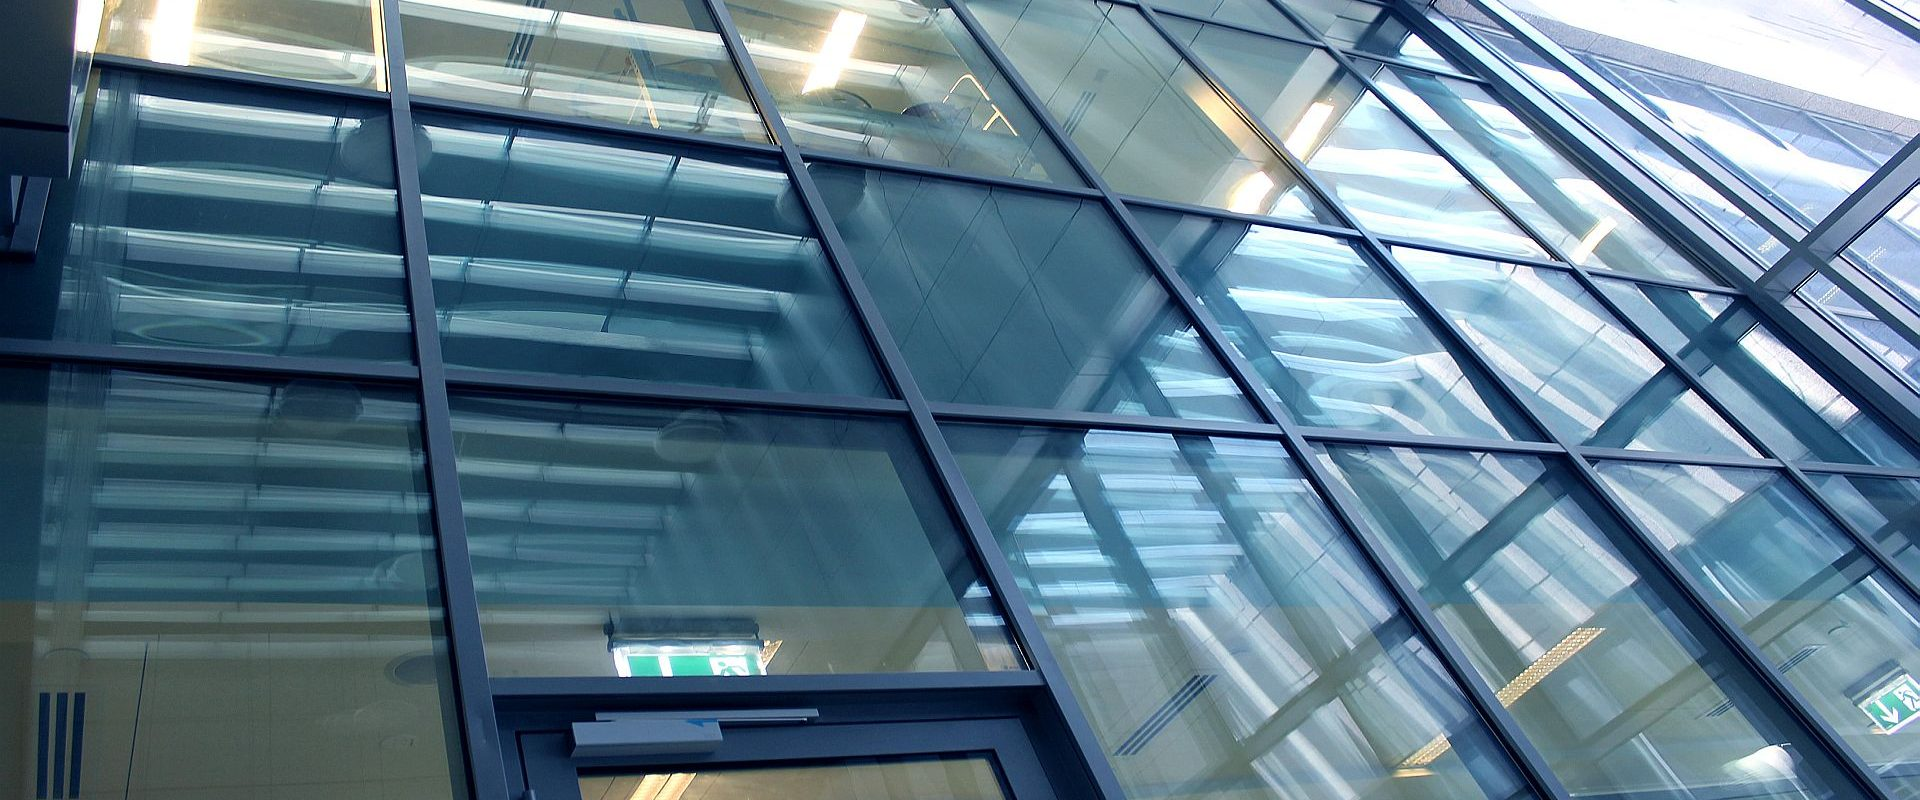 fixing facade china productimage point glass panel wall exterior oxaexjwrfupz architecture systems system curtain moden